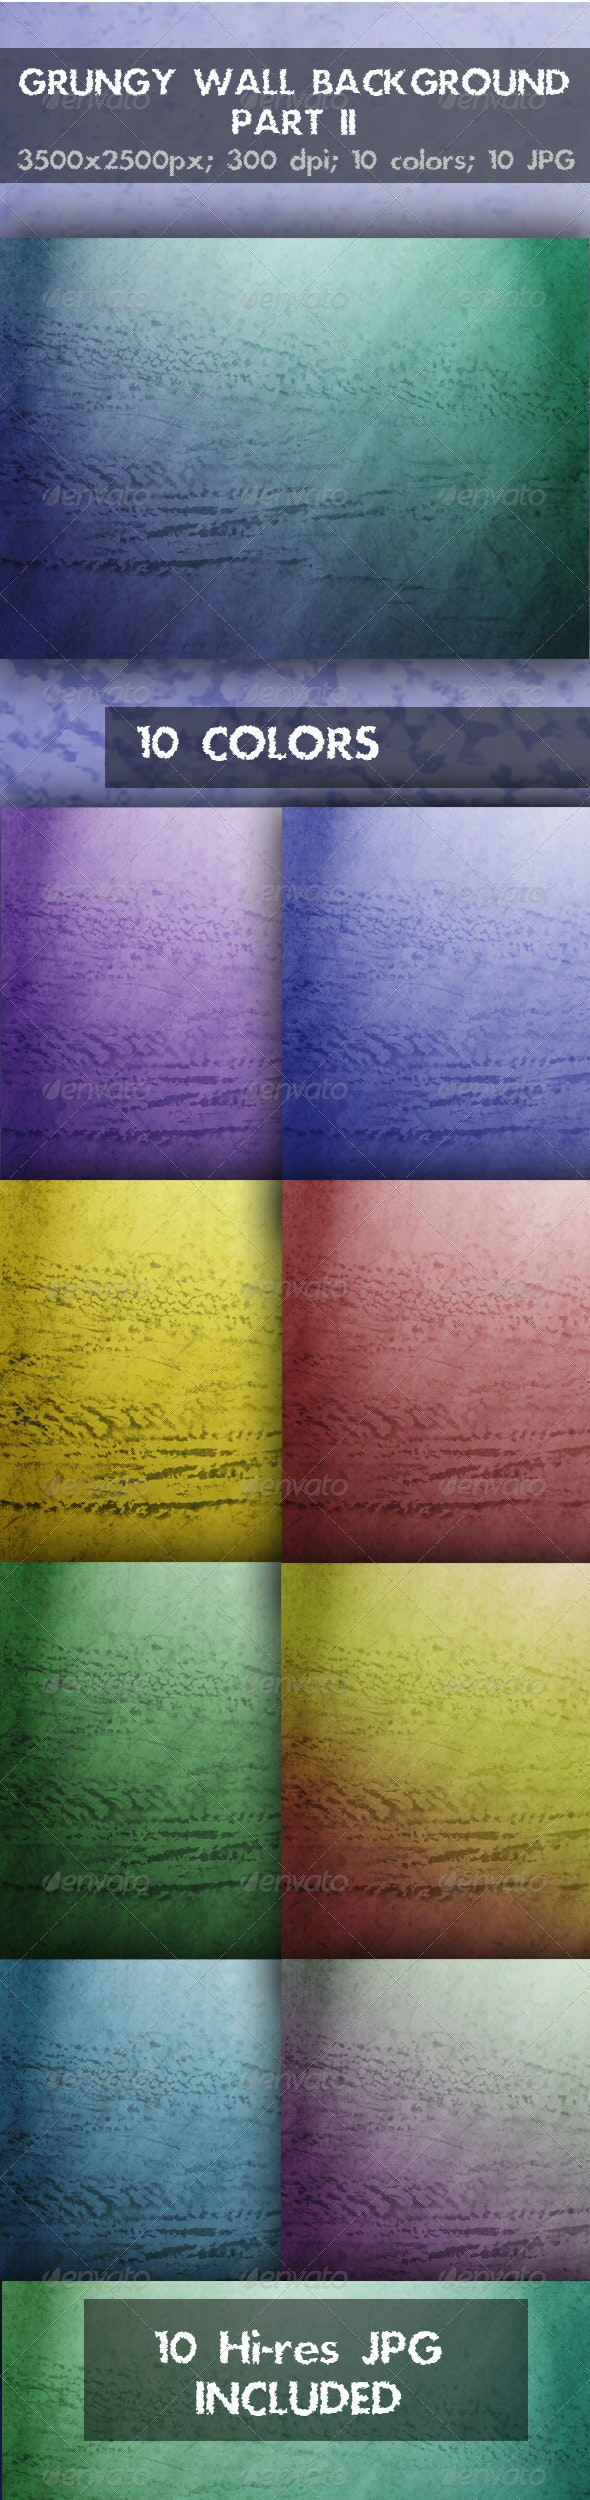 Grungy Wall Background Part 2 - Backgrounds Graphics